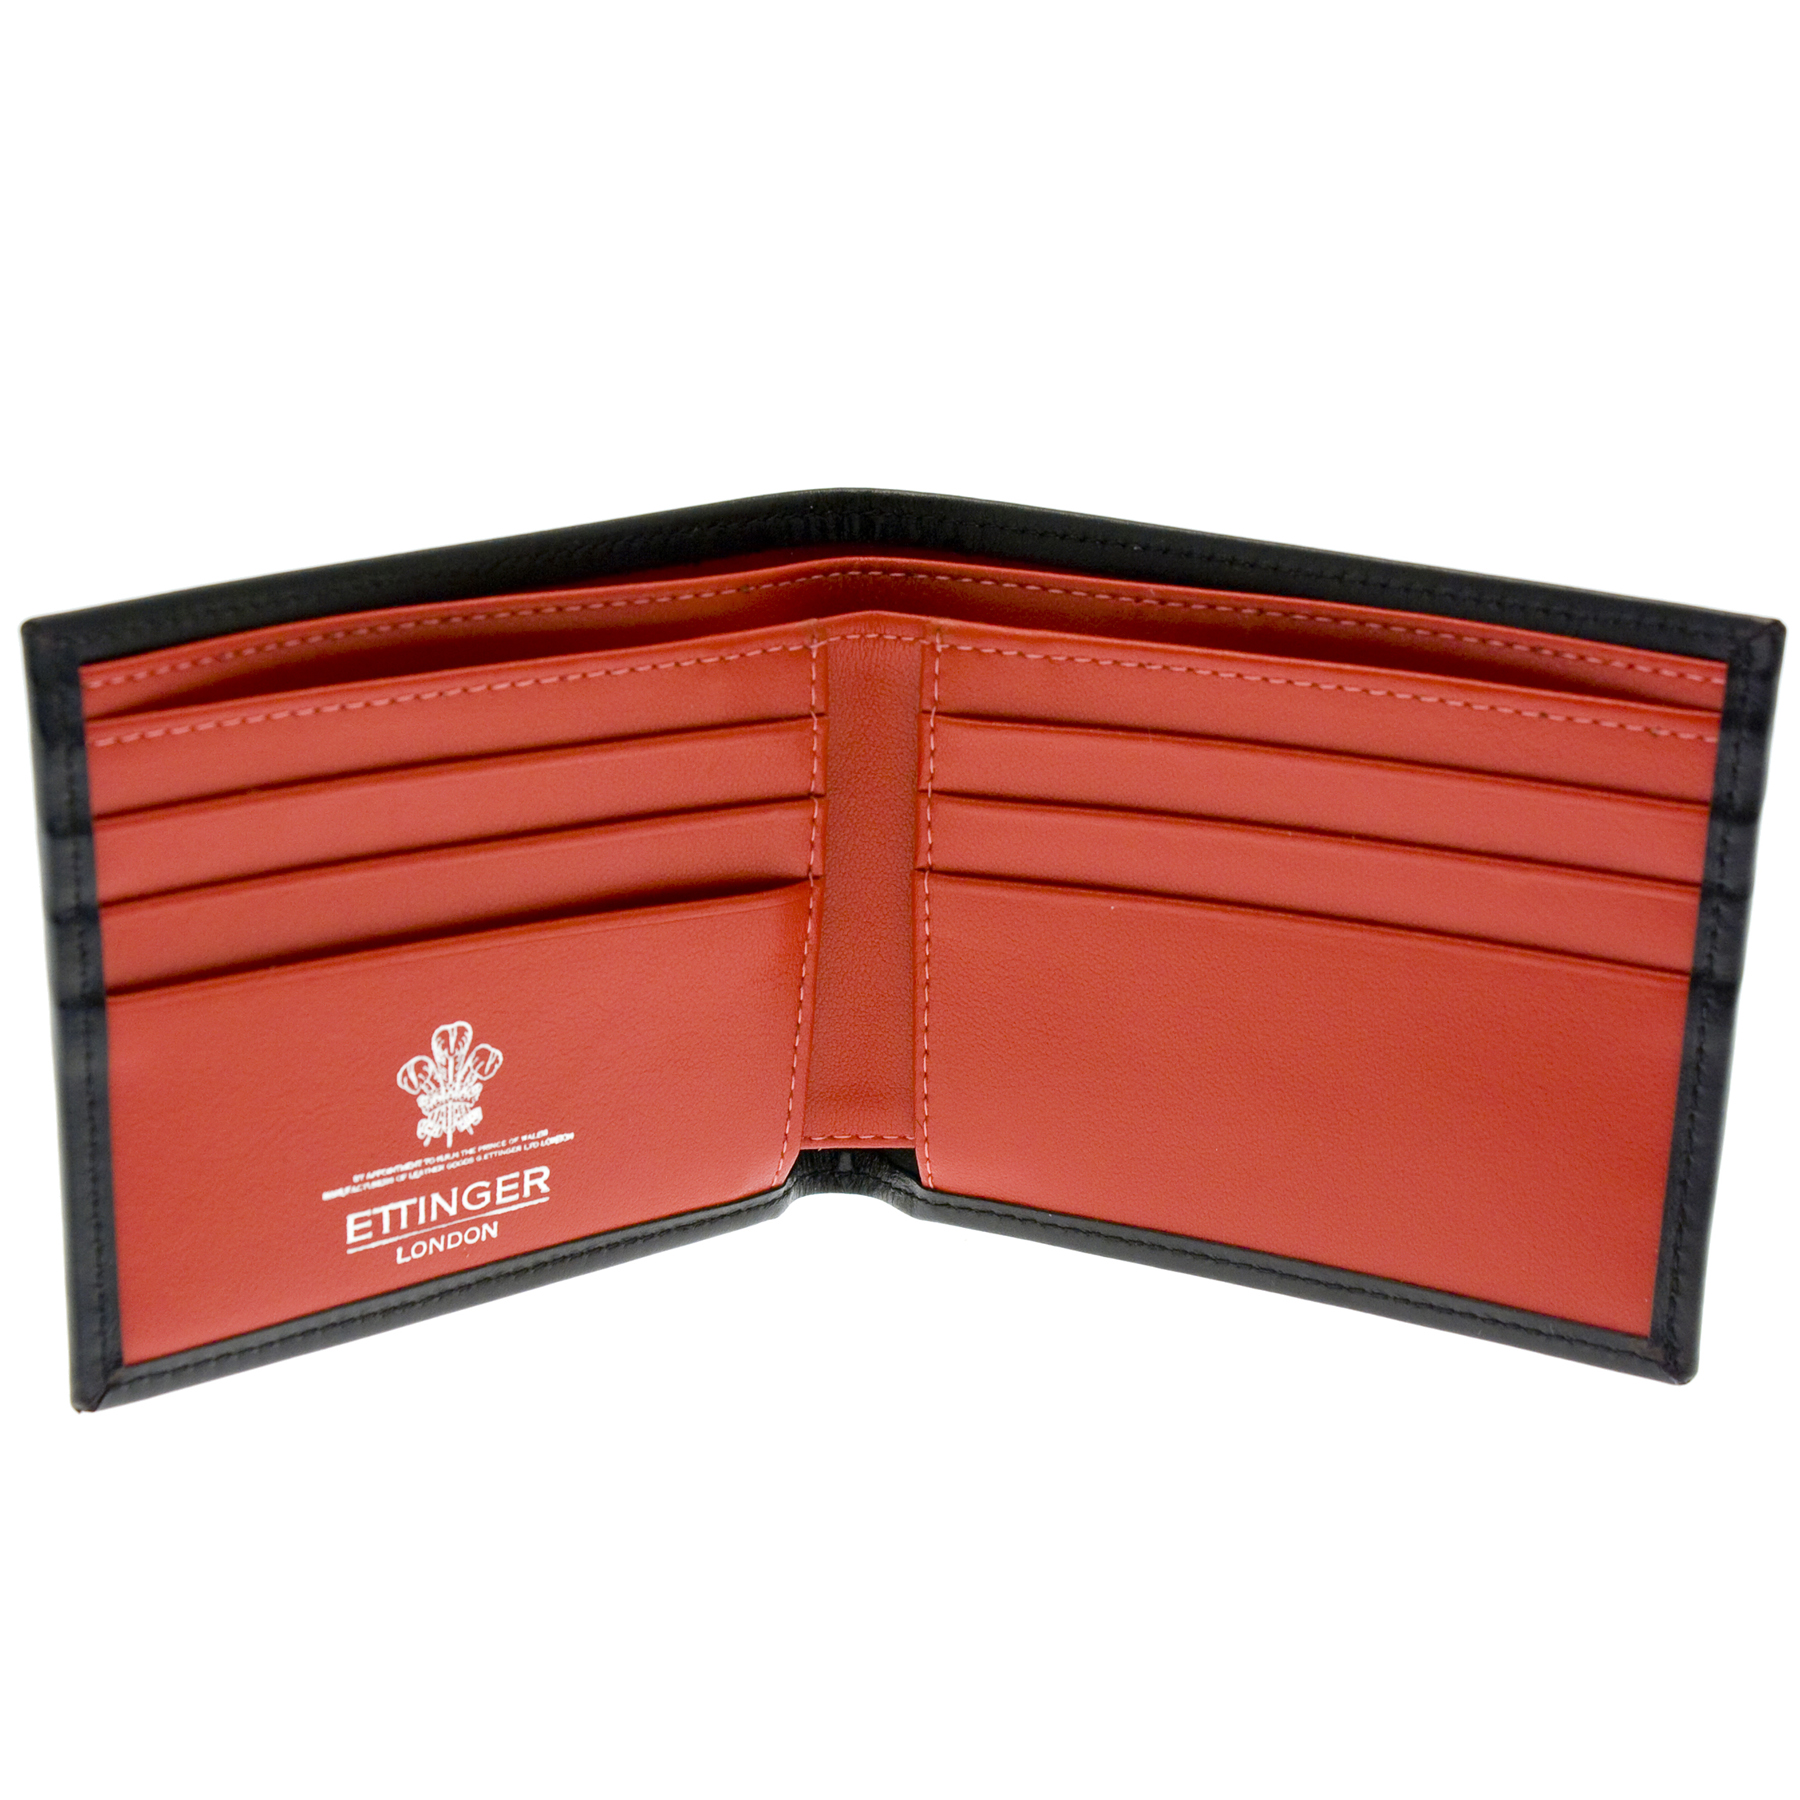 ettinger leather billfold wallet black with red interior